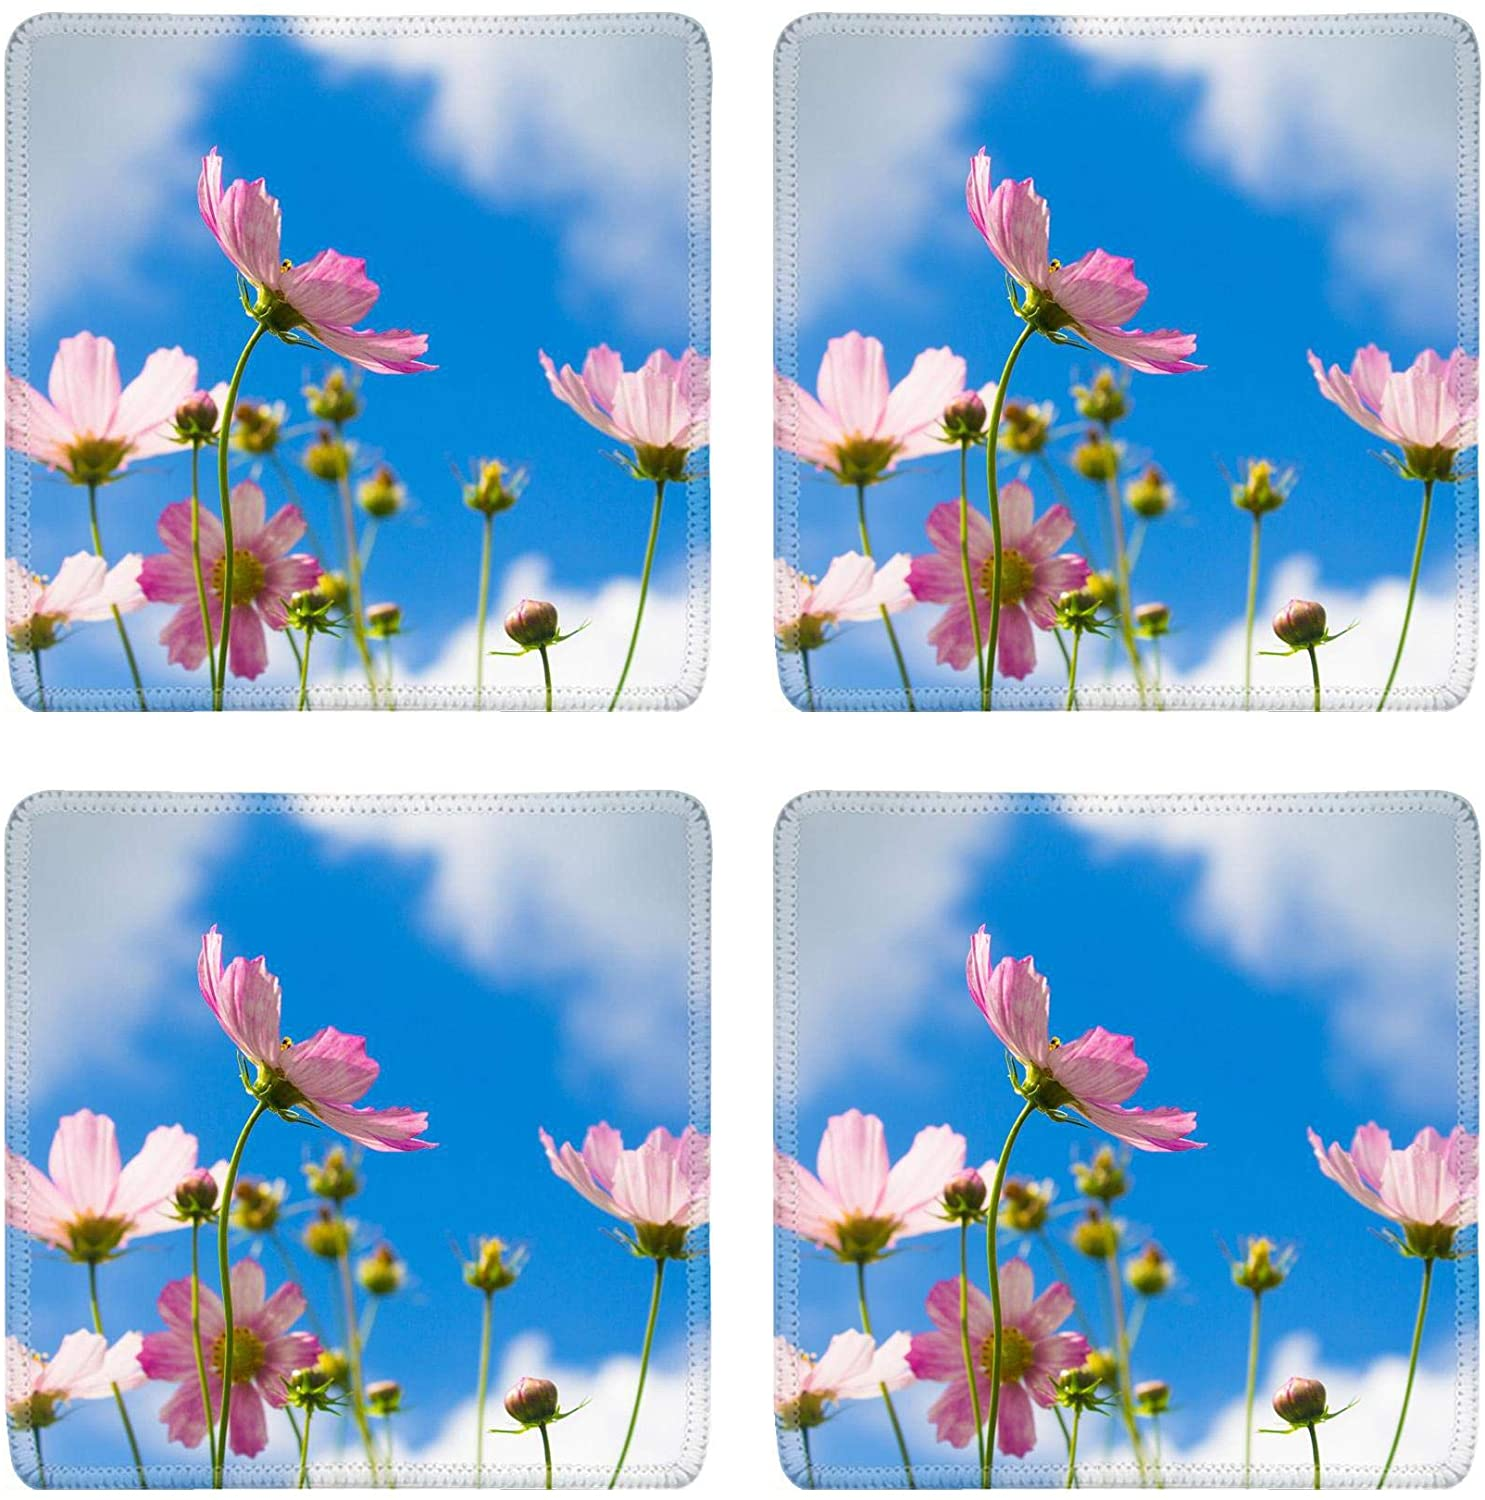 MSD Drink Coasters 4 Piece Set Image ID: 19290734 pink flowers on blue clouds background